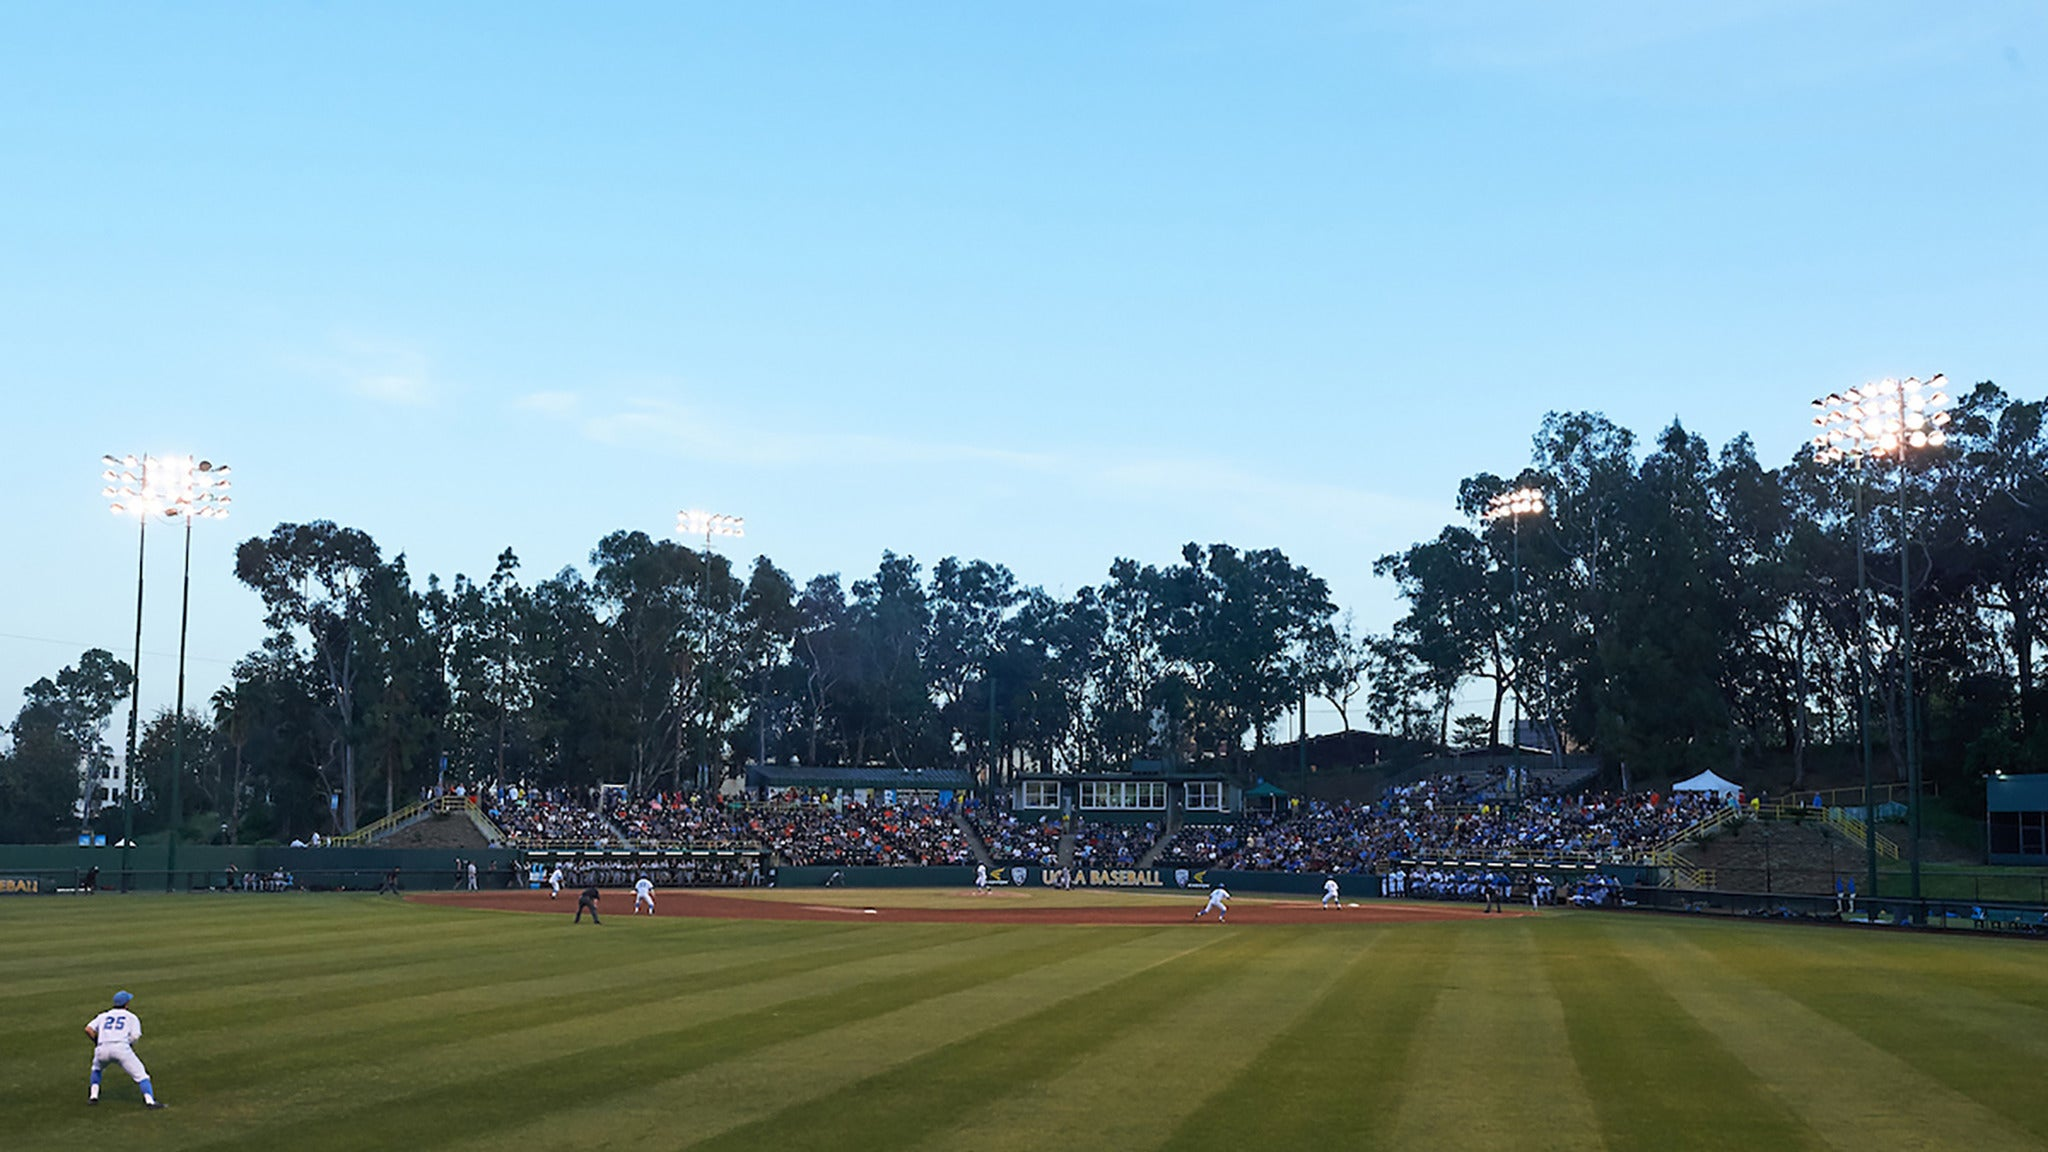 UCLA Bruins Baseball vs. Mount St. Mary's Baseball